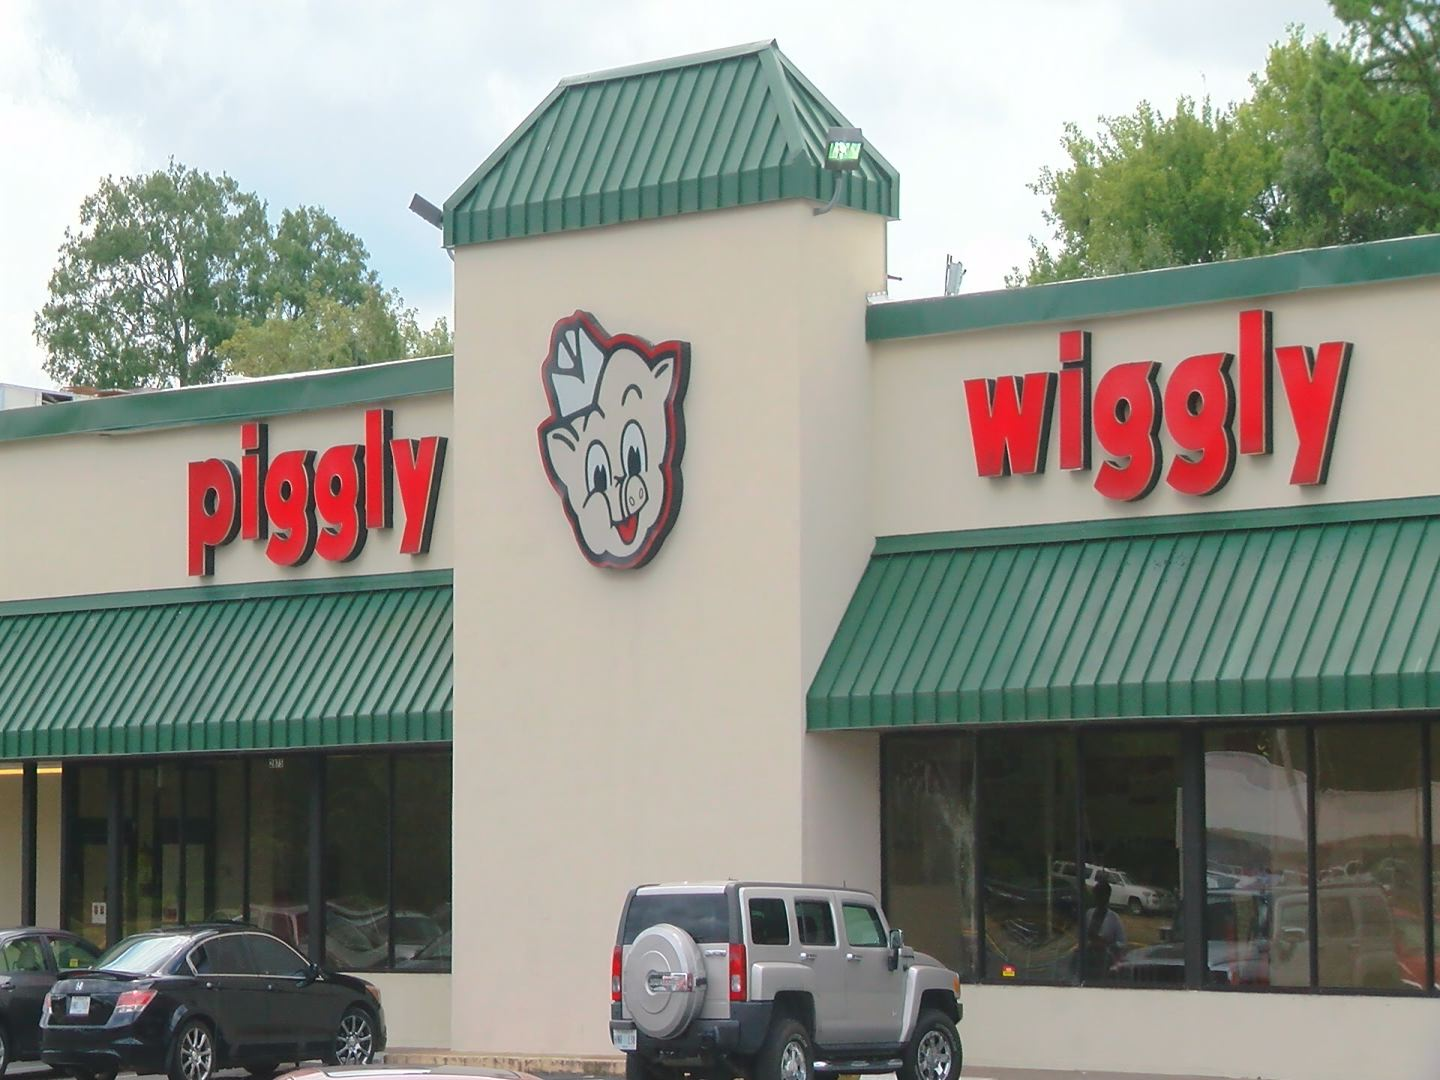 PIGGLY WIGGLY 1_46599